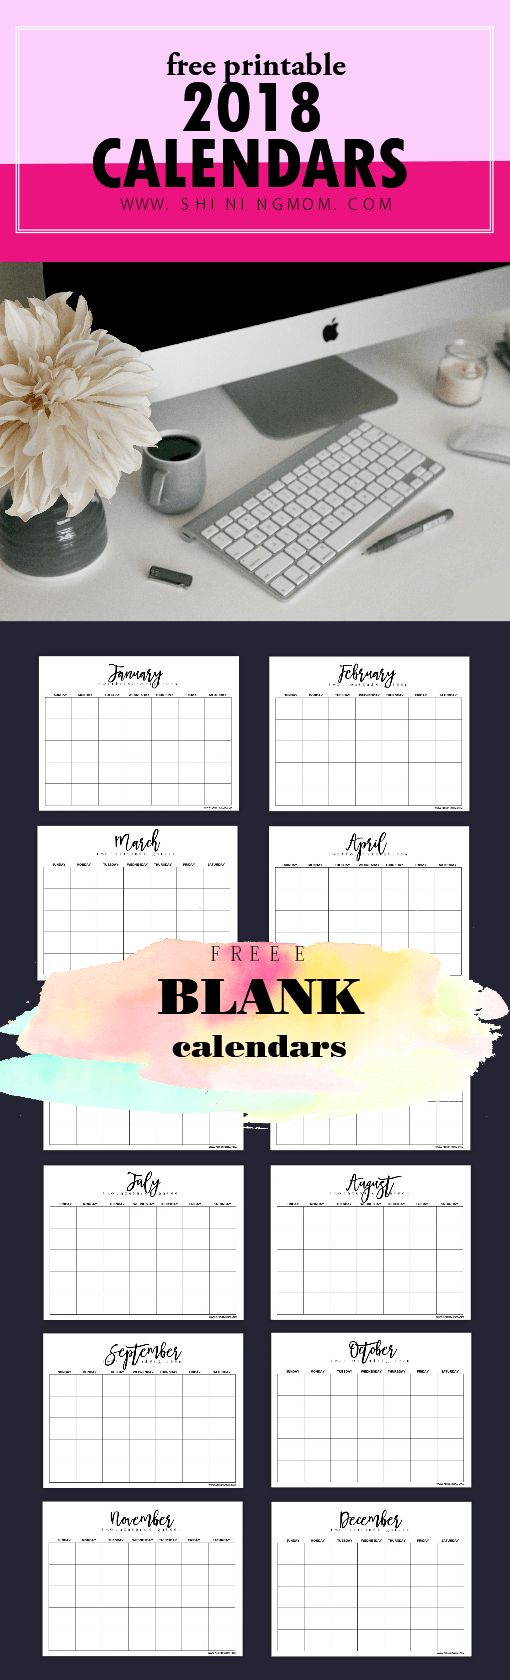 Free Fully Editable 2018 Calendar Template In Word Study Journal